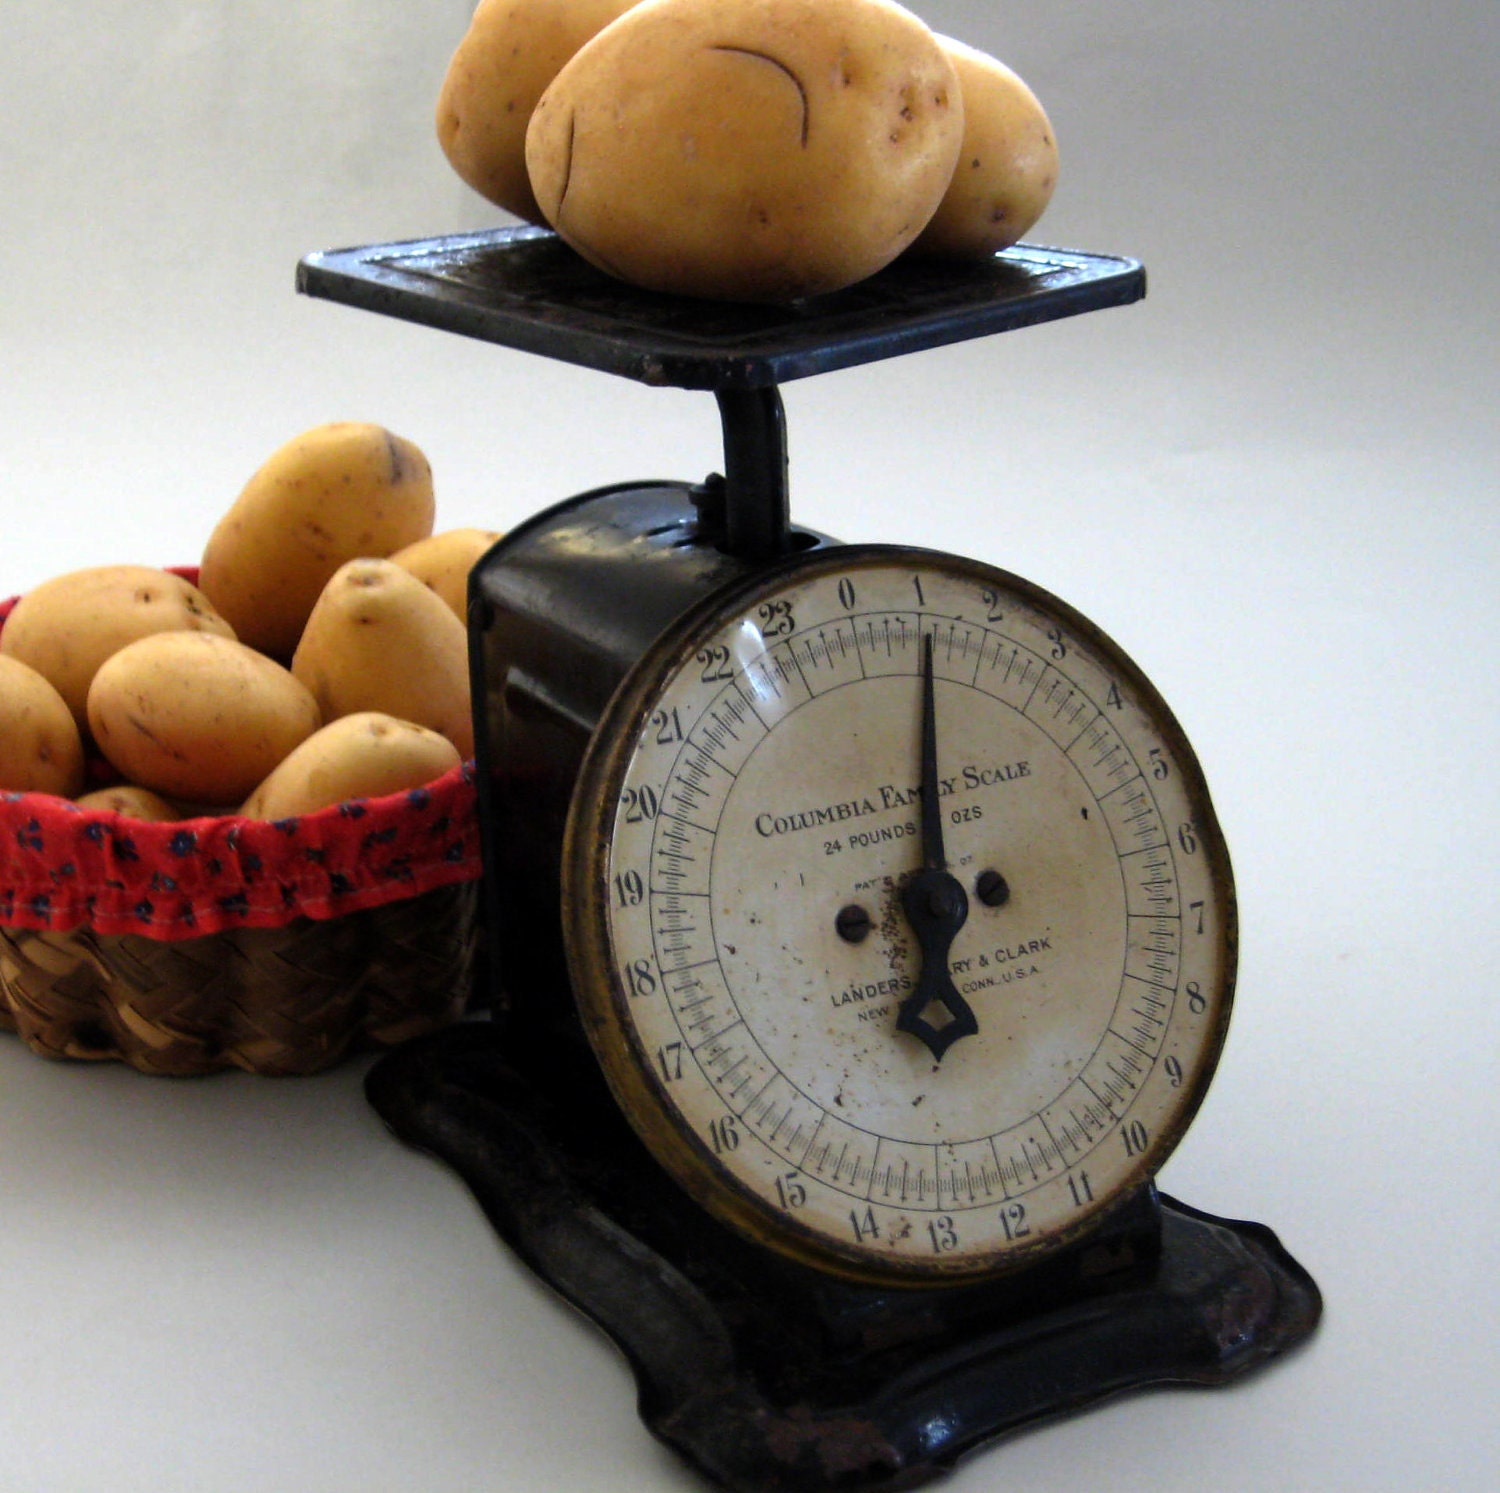 Antique Kitchen Scale: Antique Scales Vintage Kitchen Scales